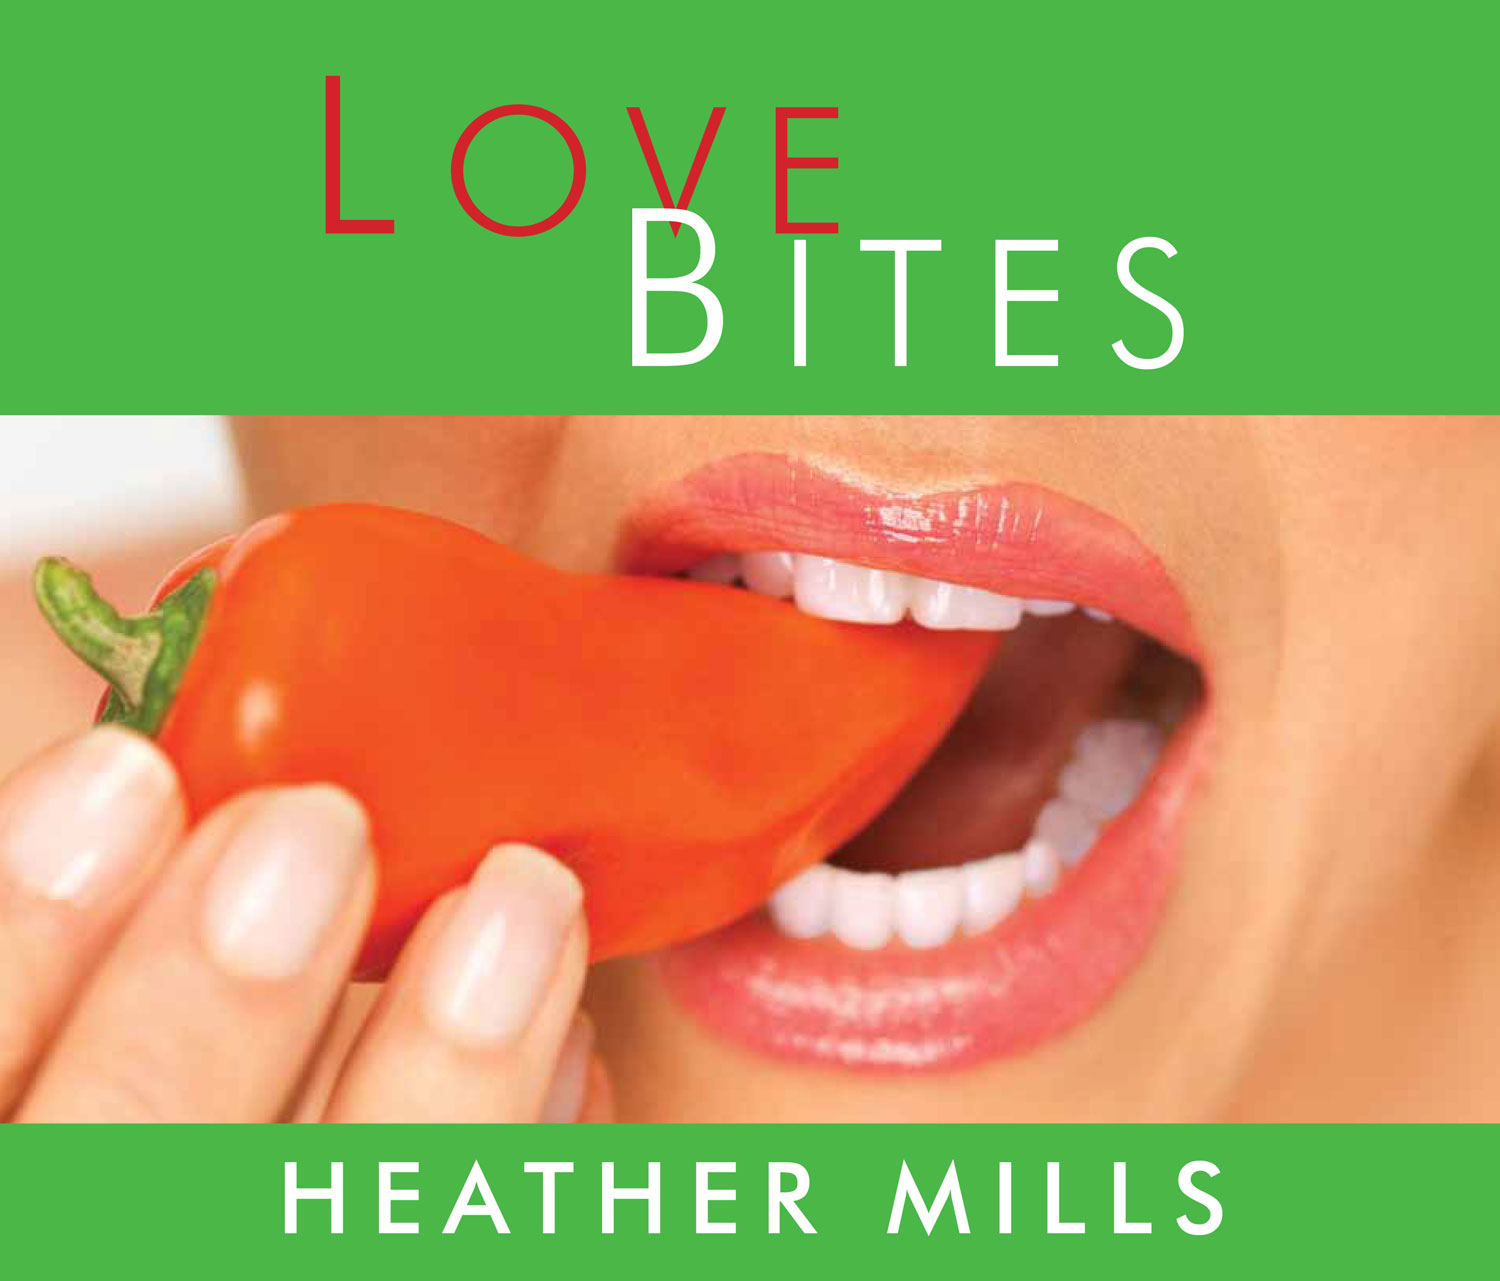 Over the years I have collected and amended recipes from all over the world, in order to create what's essentially a vegan cookbook of all the nation's favourite foods. LoveBite the Vegan Cookbook written by Heather Mills.